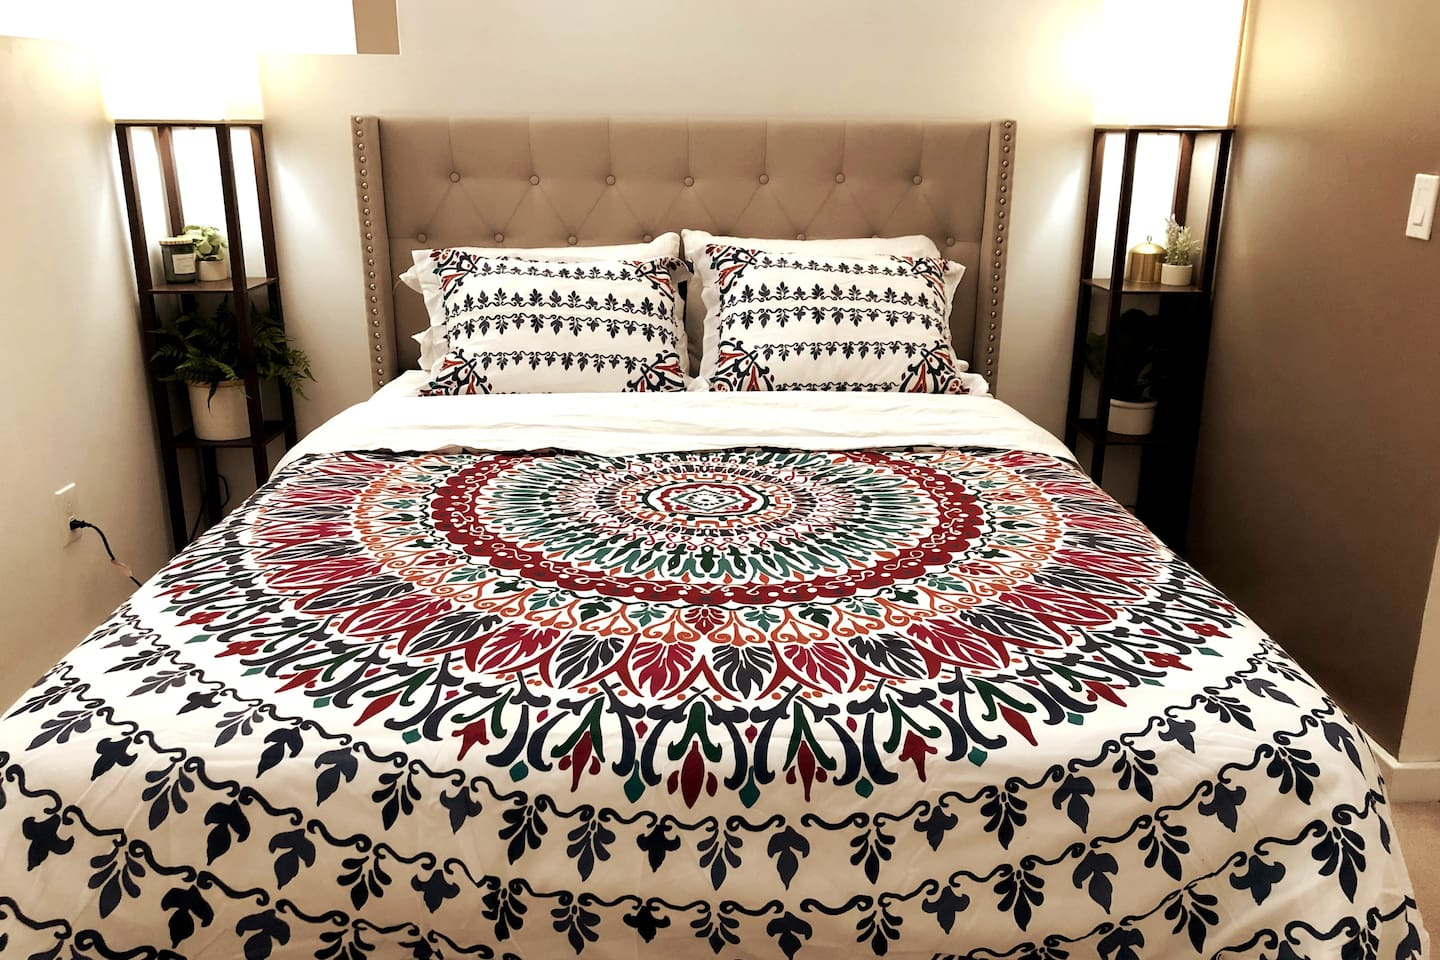 Queen size bed with fresh clean linens! Sheets are always cotton and a medium-high thread count. Beds are medium firmness with a softer pillow-top.